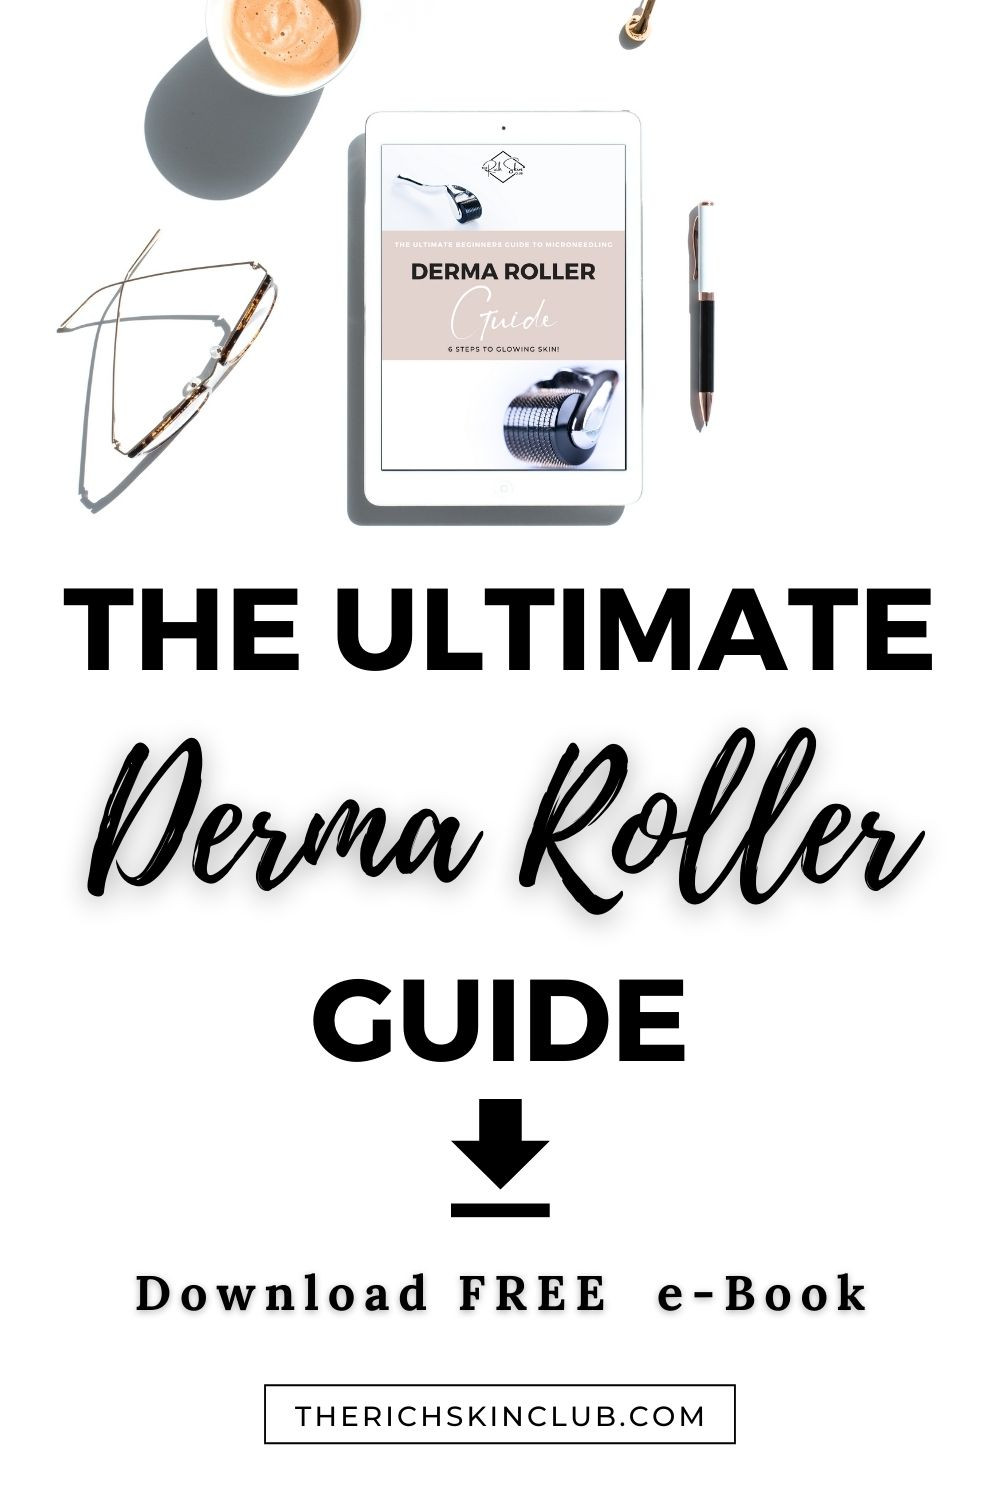 Microneedling Tips: Step by step guide to using a derma roller at-home. Microneedling helps to reduce acne scars/ post-inflammatory pigmentation, wrinkles and dry, damaged skin. Click the pin to learn how to get gorgeous, glowing skin with a derma roller. #microneedling #howtouseadermaroller #bestdermaroller